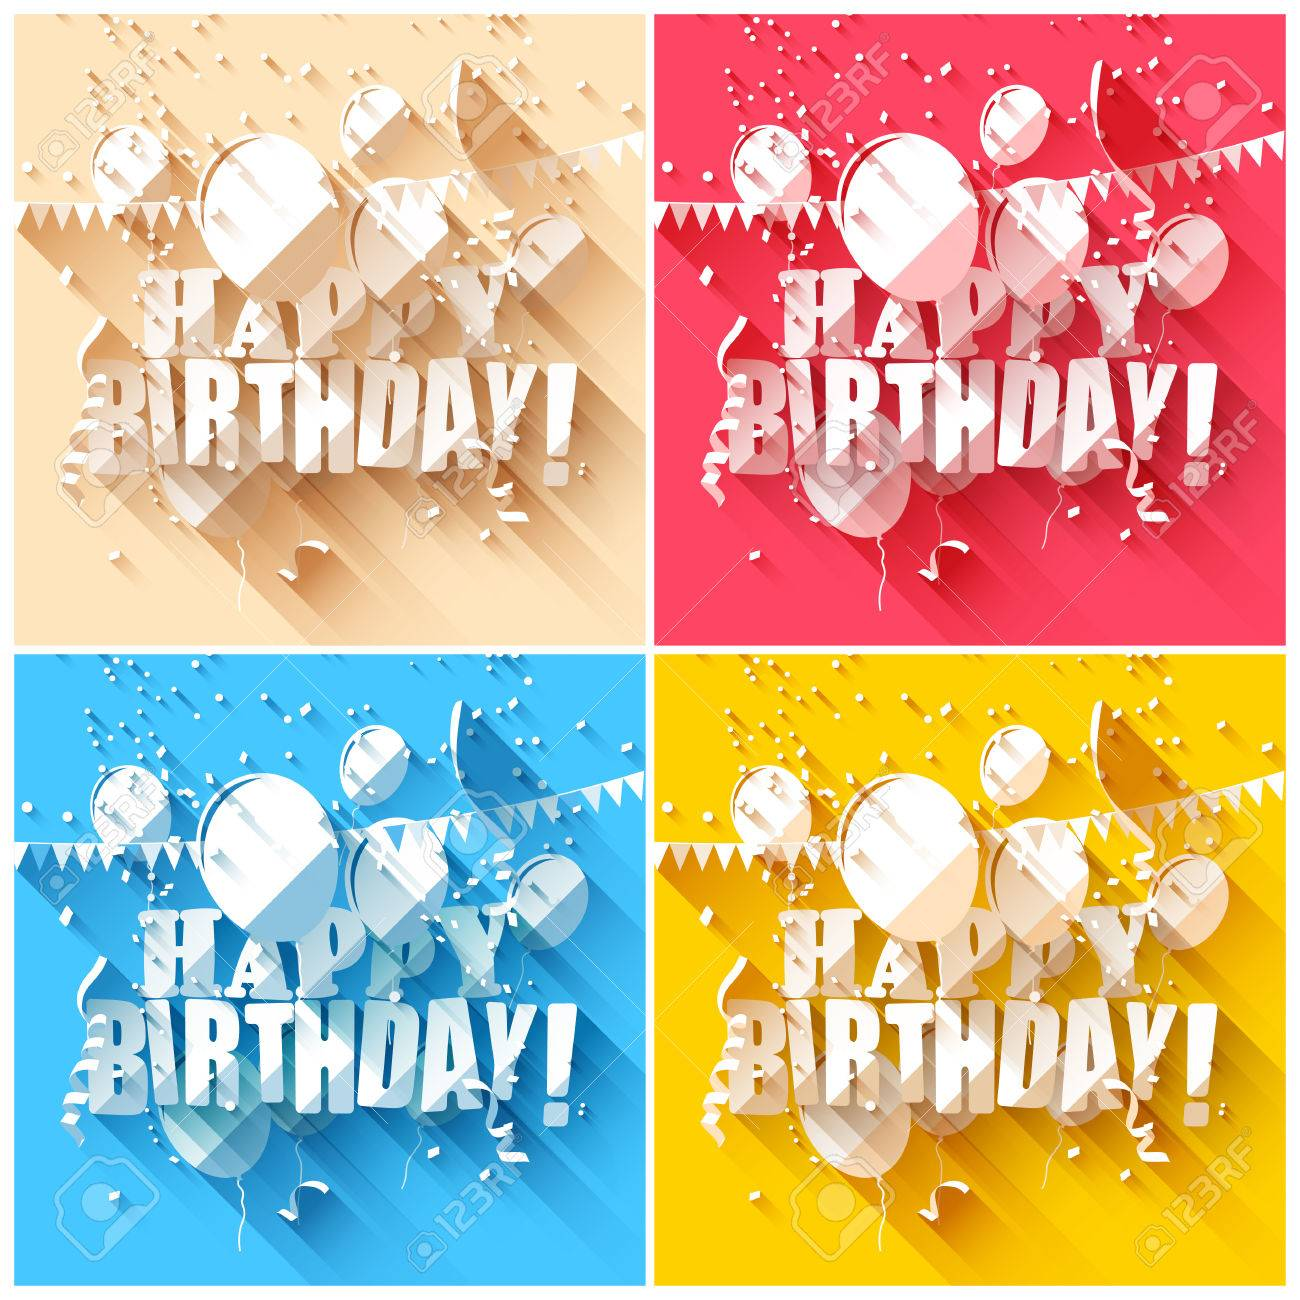 set of birthday backgrounds in flat design style royalty free